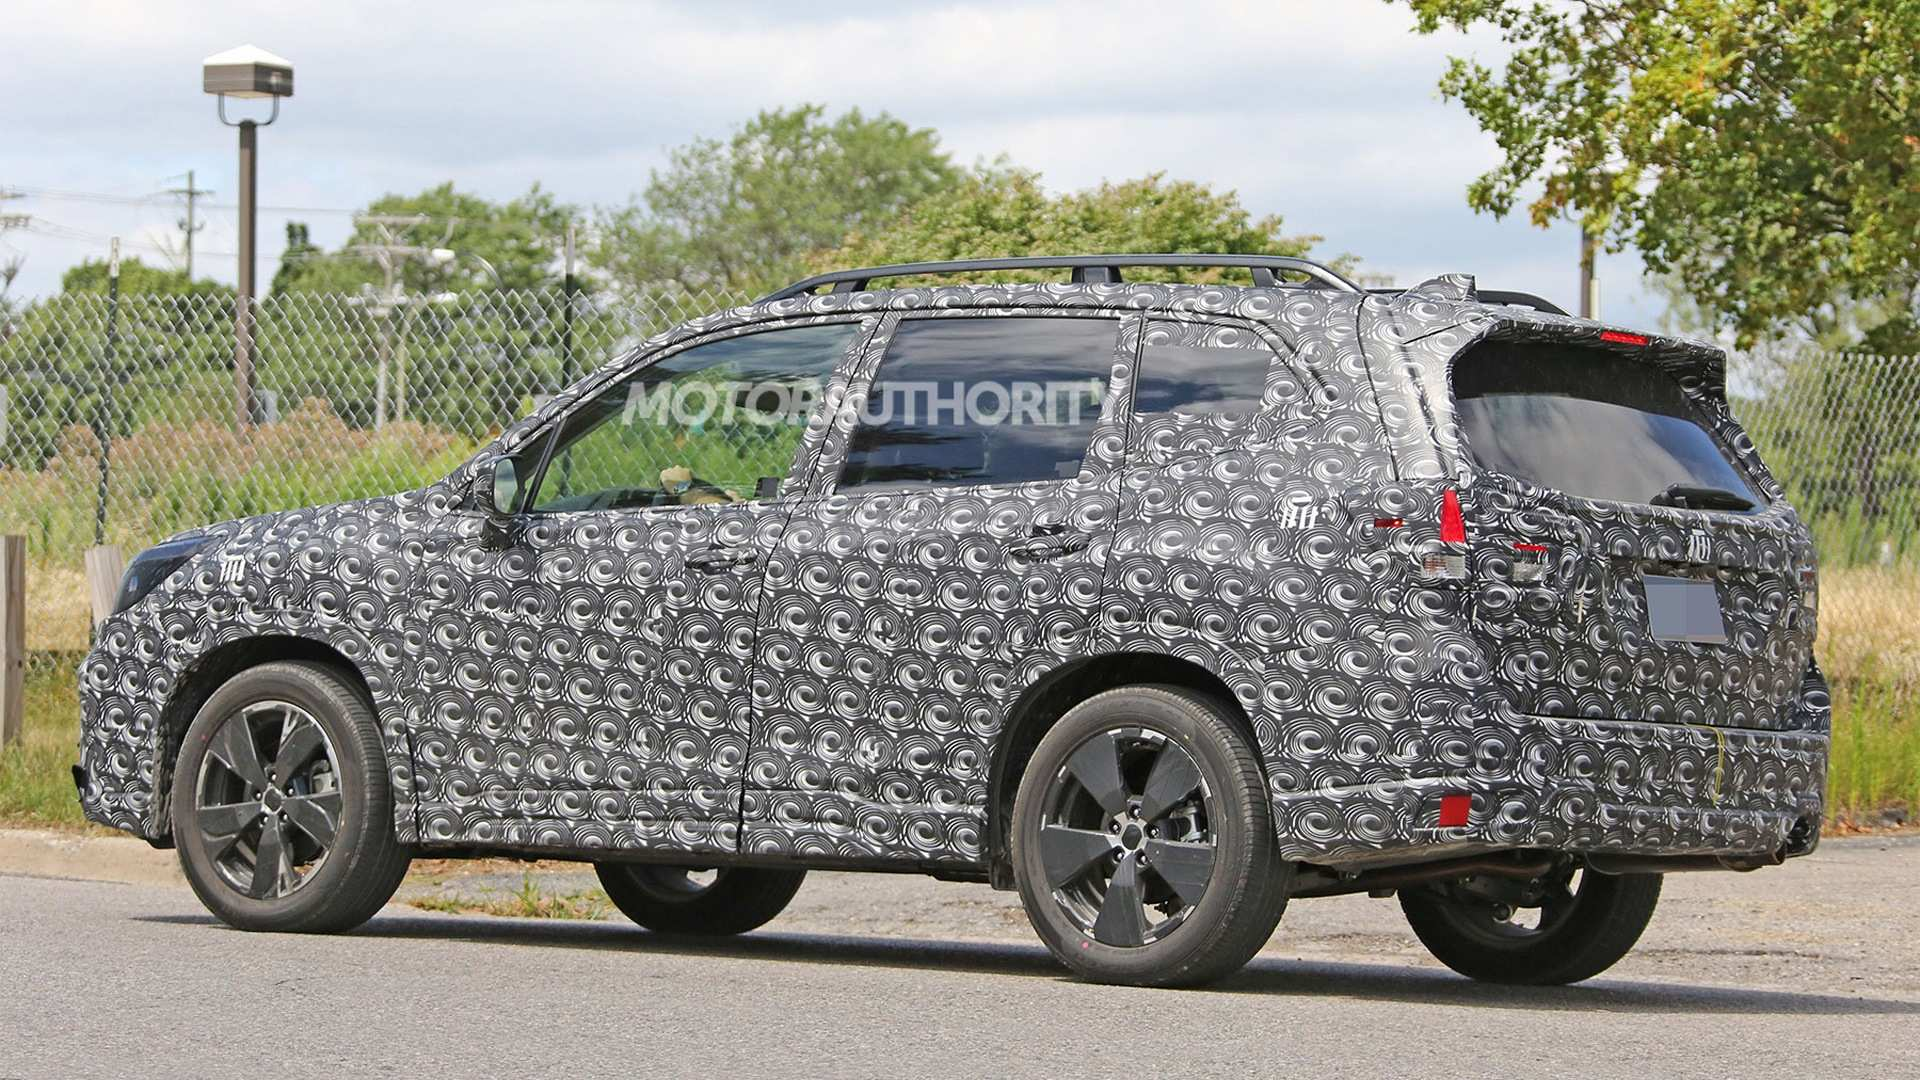 70 Gallery of 2019 Subaru Forester Spy Photos Research New for 2019 Subaru Forester Spy Photos